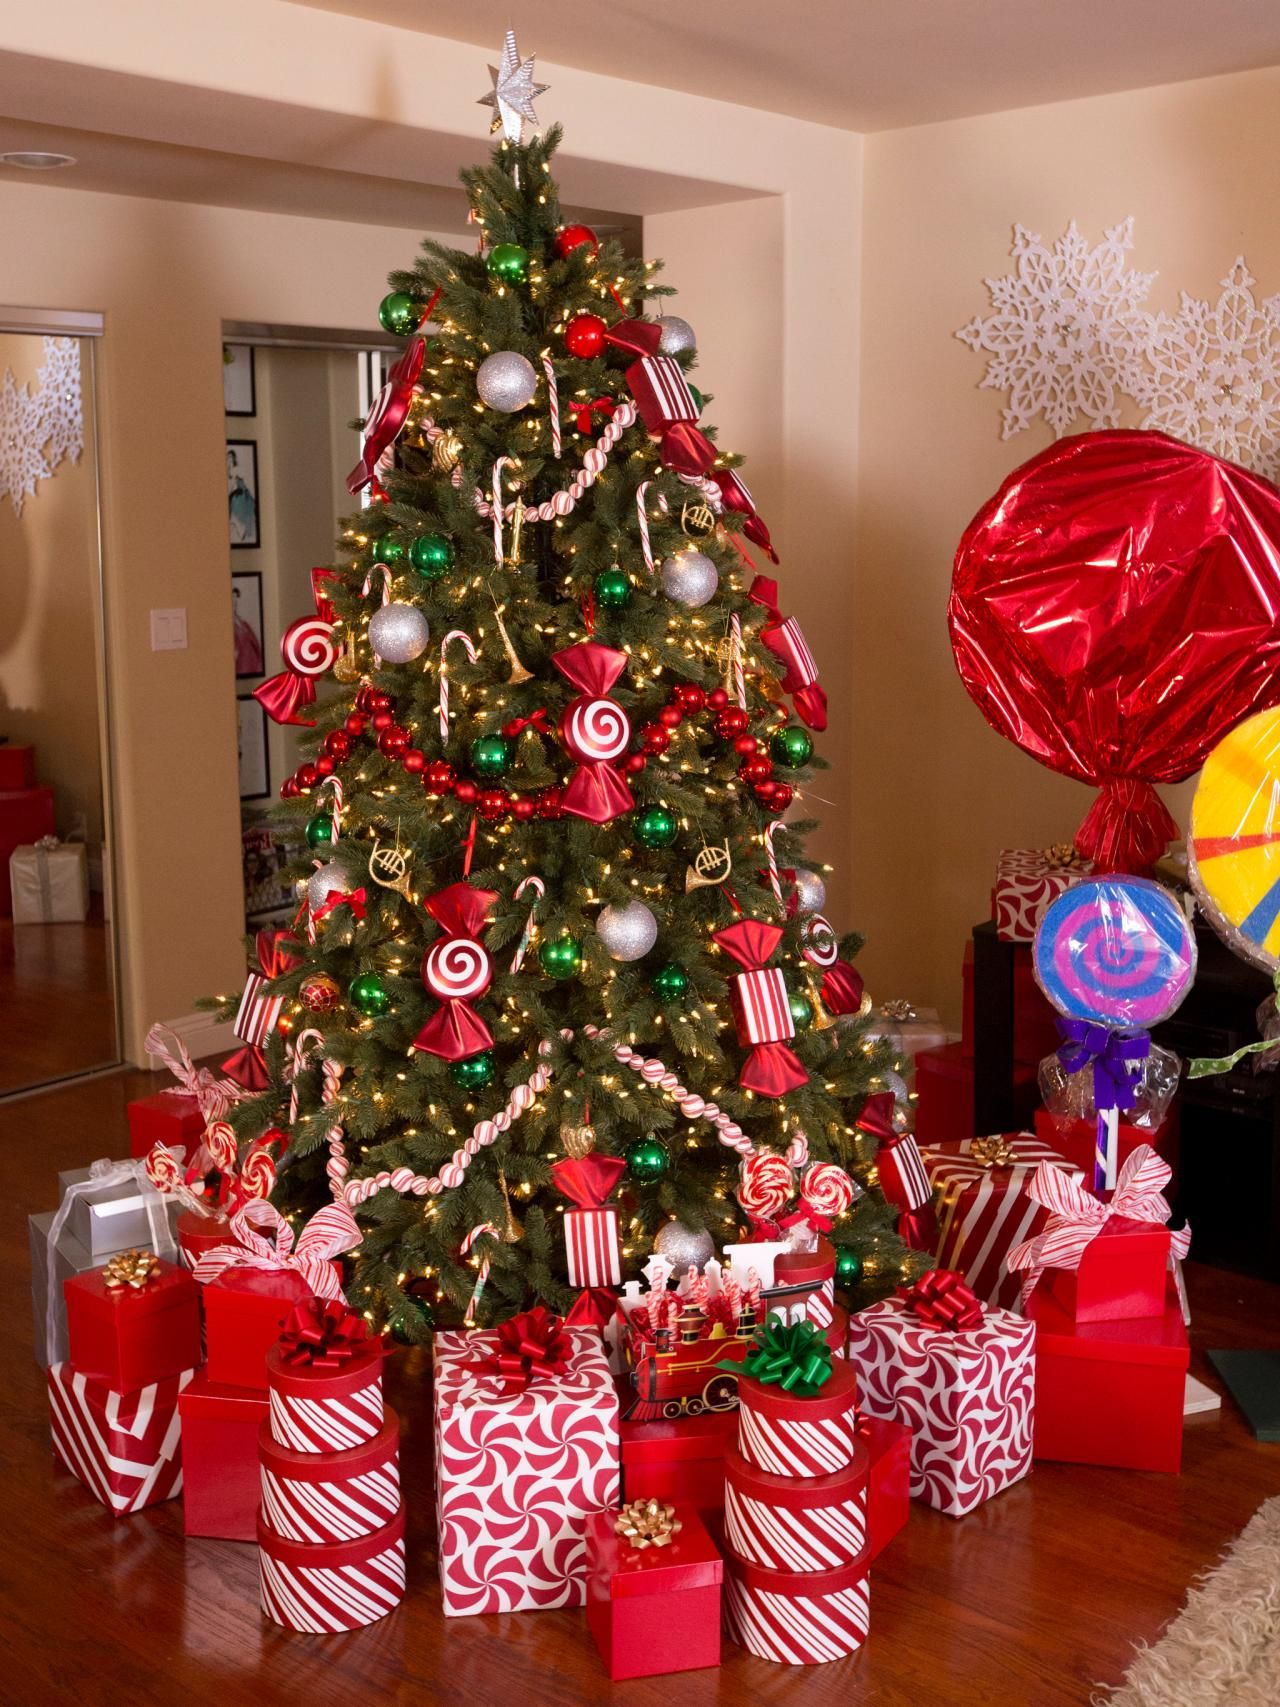 Actress Garcelle Beauvais Candy Cane Christmas Tree #Celebrityholidayhomes